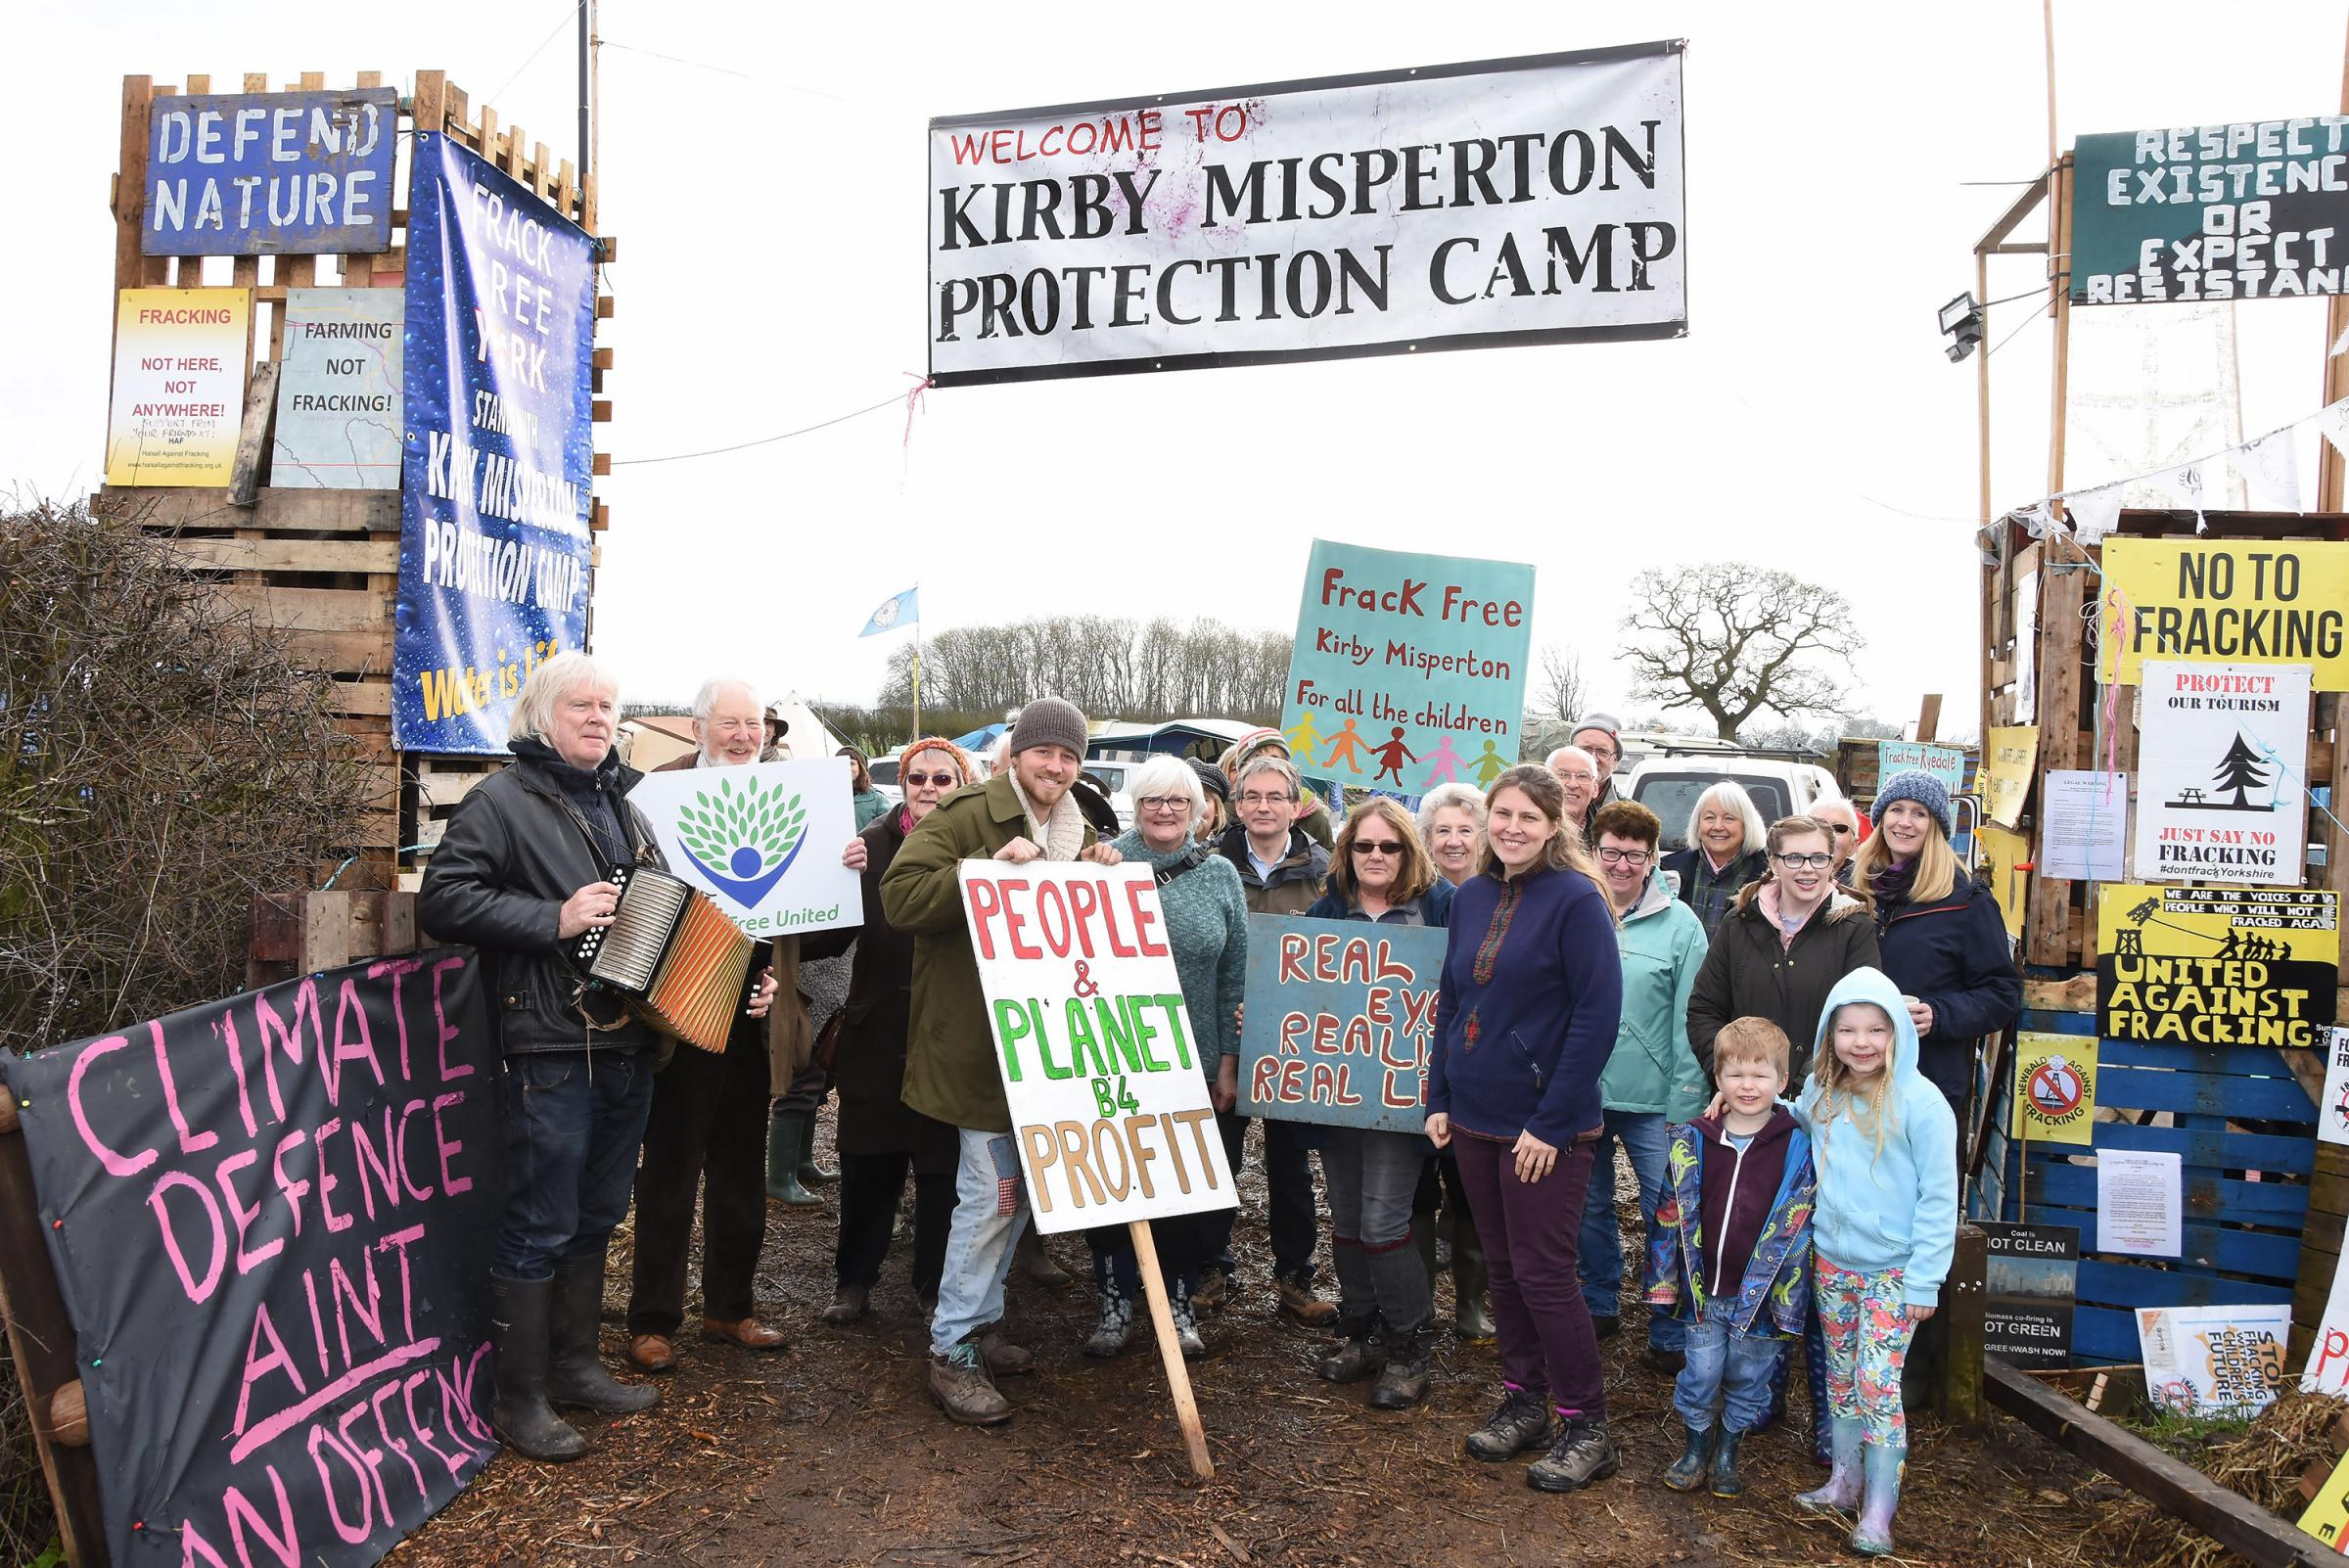 Protesters at Kirby Misperton Protection Camp